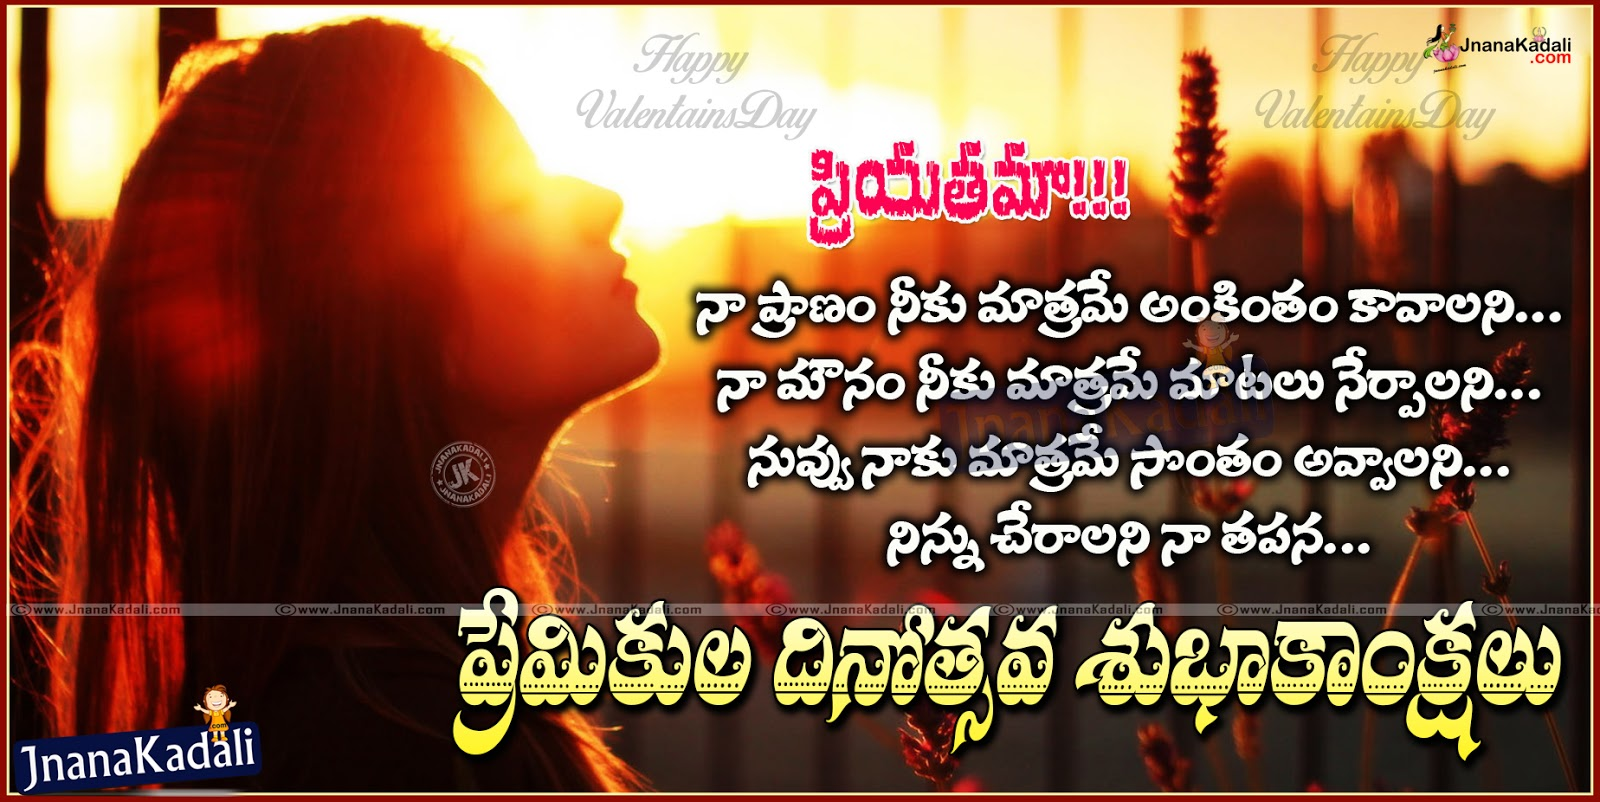 cool valentines day wishes quotes kavithalu in telugu with